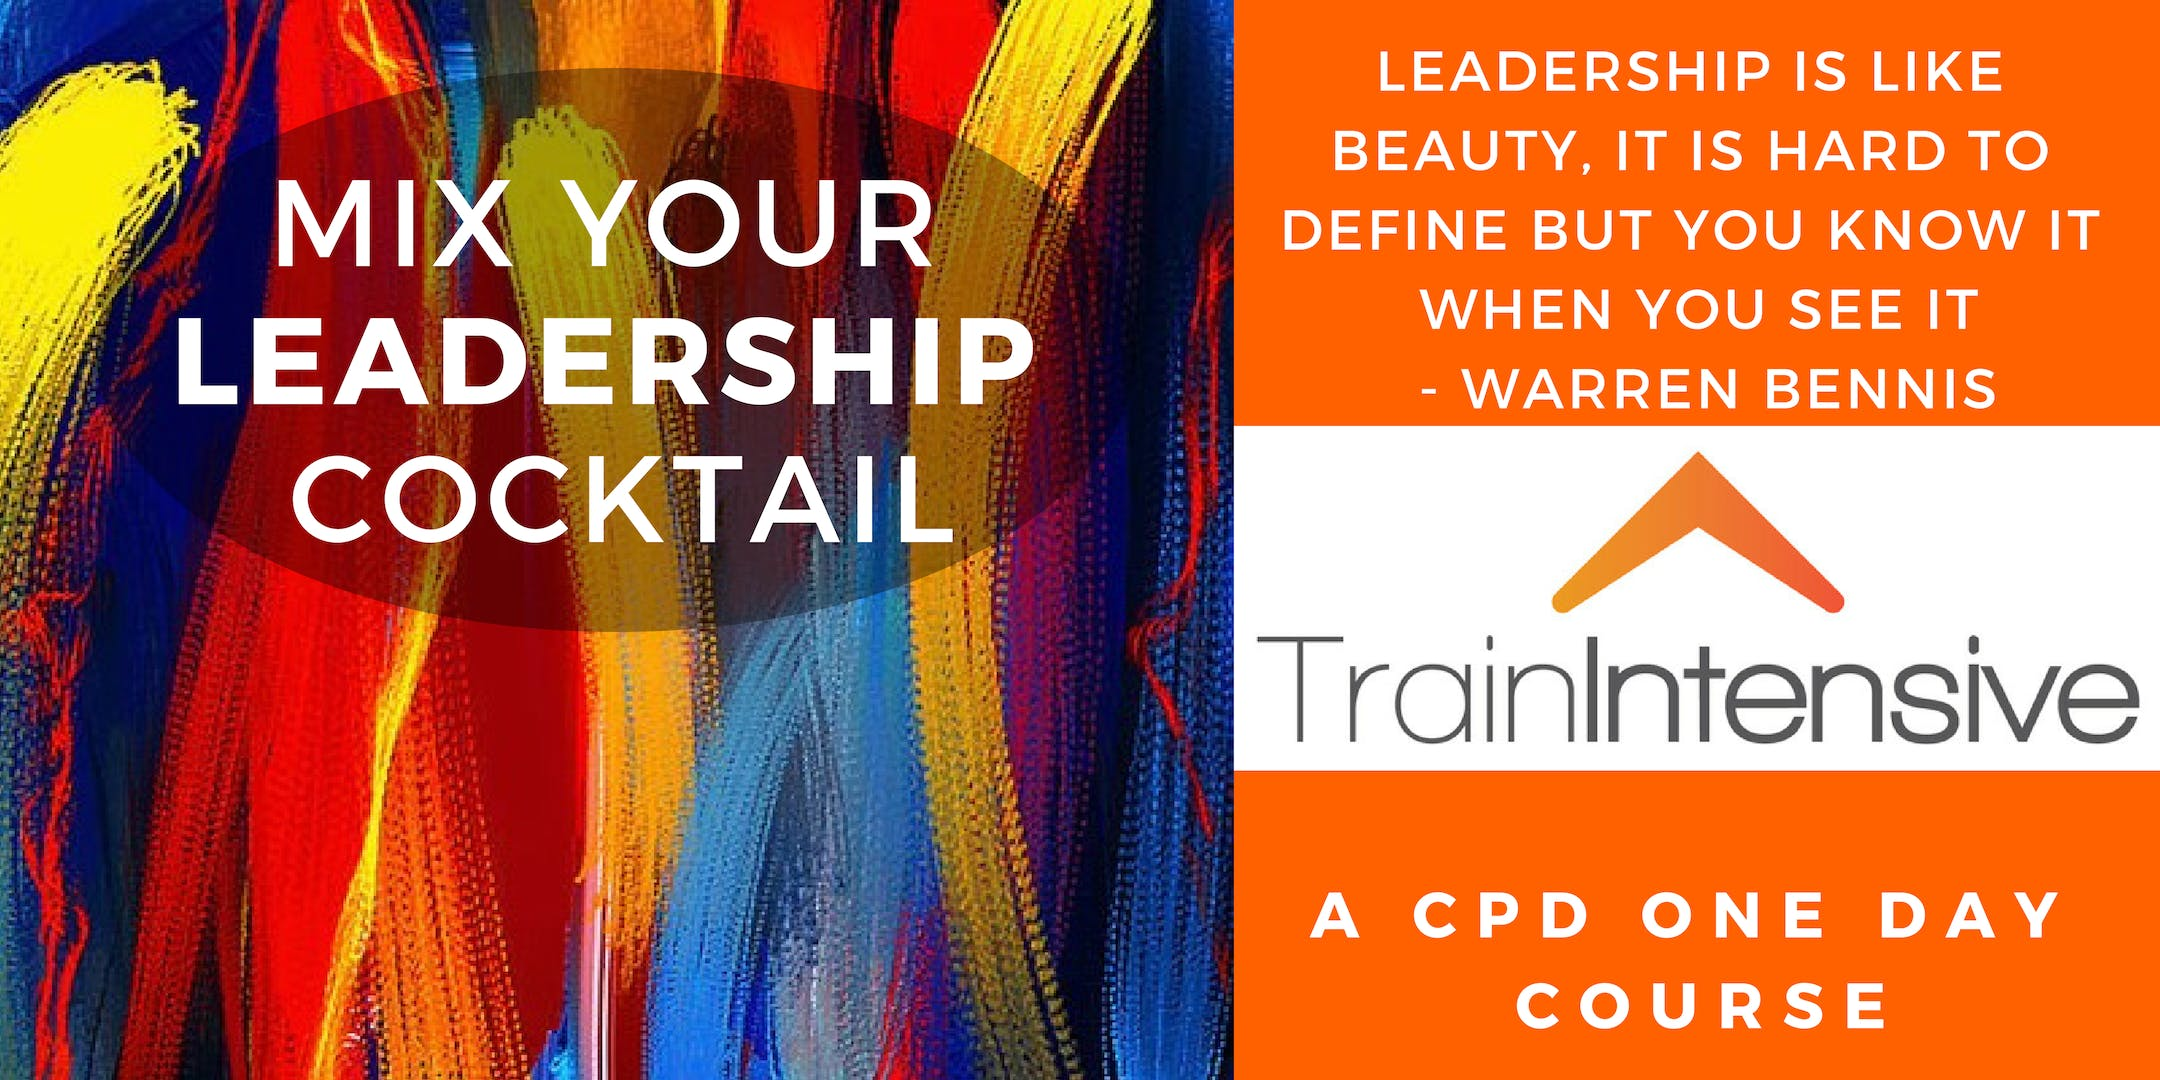 Mix Your Leadership Cocktail Training Course